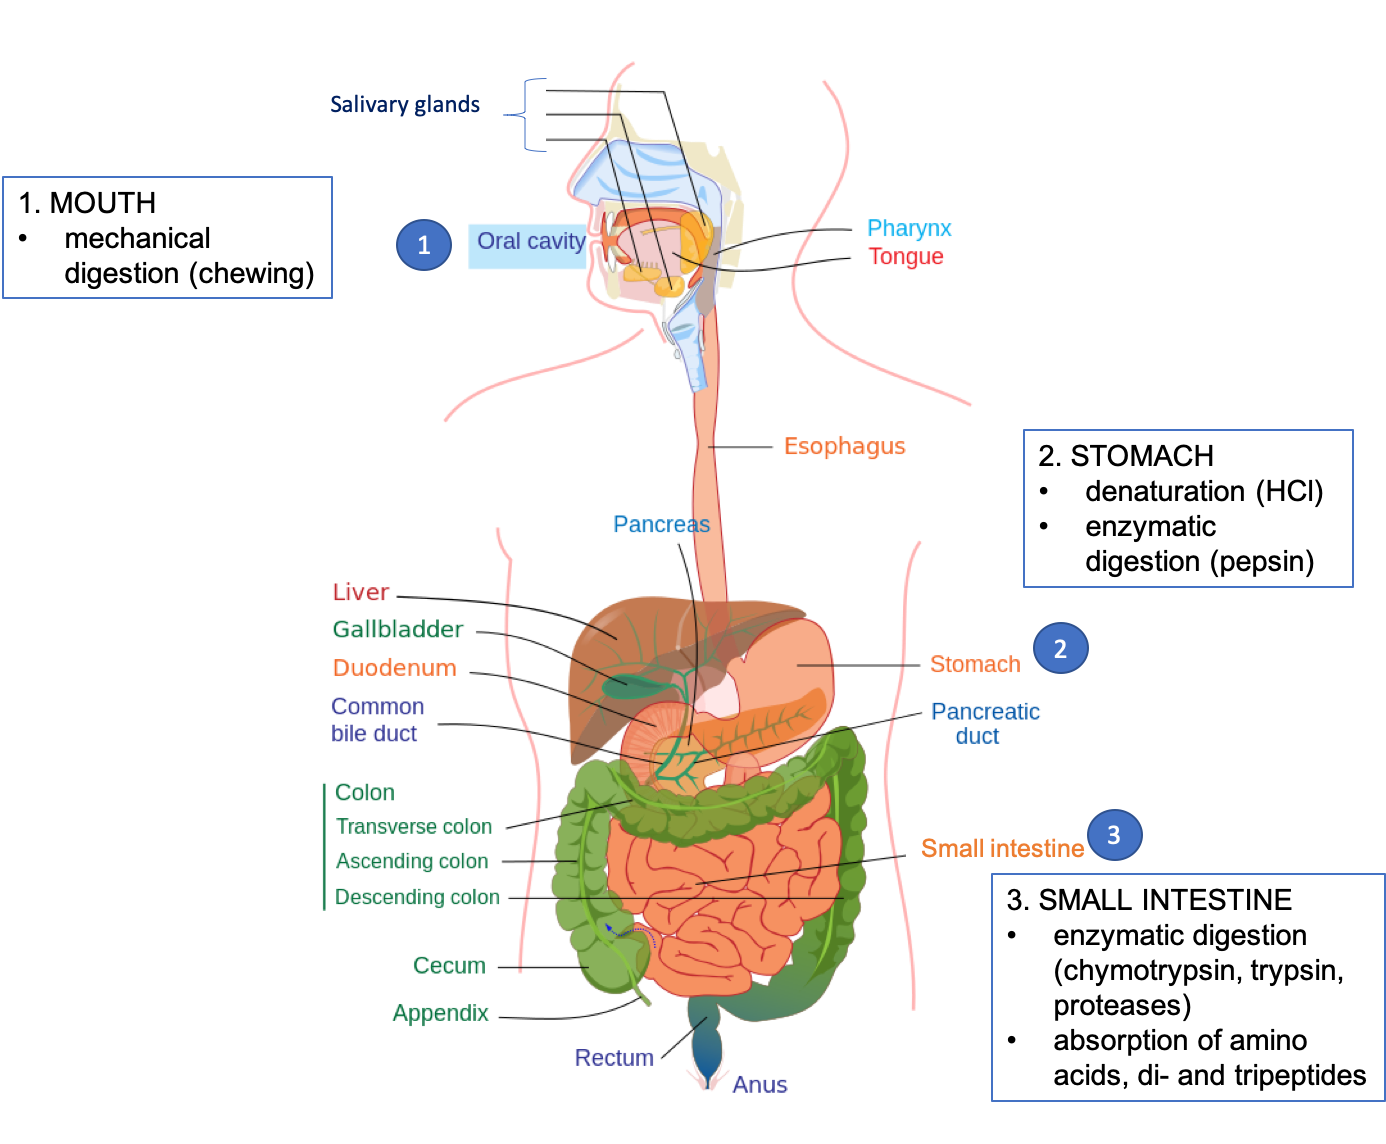 The figure shows a drawing of the digestive system, with organs labeled. Major sites of digestion of protein are highlighted, including mouth (mechanical digestion, chewing), stomach (denaturation by HCl and enzymatic digestion by pepsin), and small intestine (enzymatic digestion by chymotrypsin, trypsin, and proteases, and absorption of amino acids and di and tripeptides).